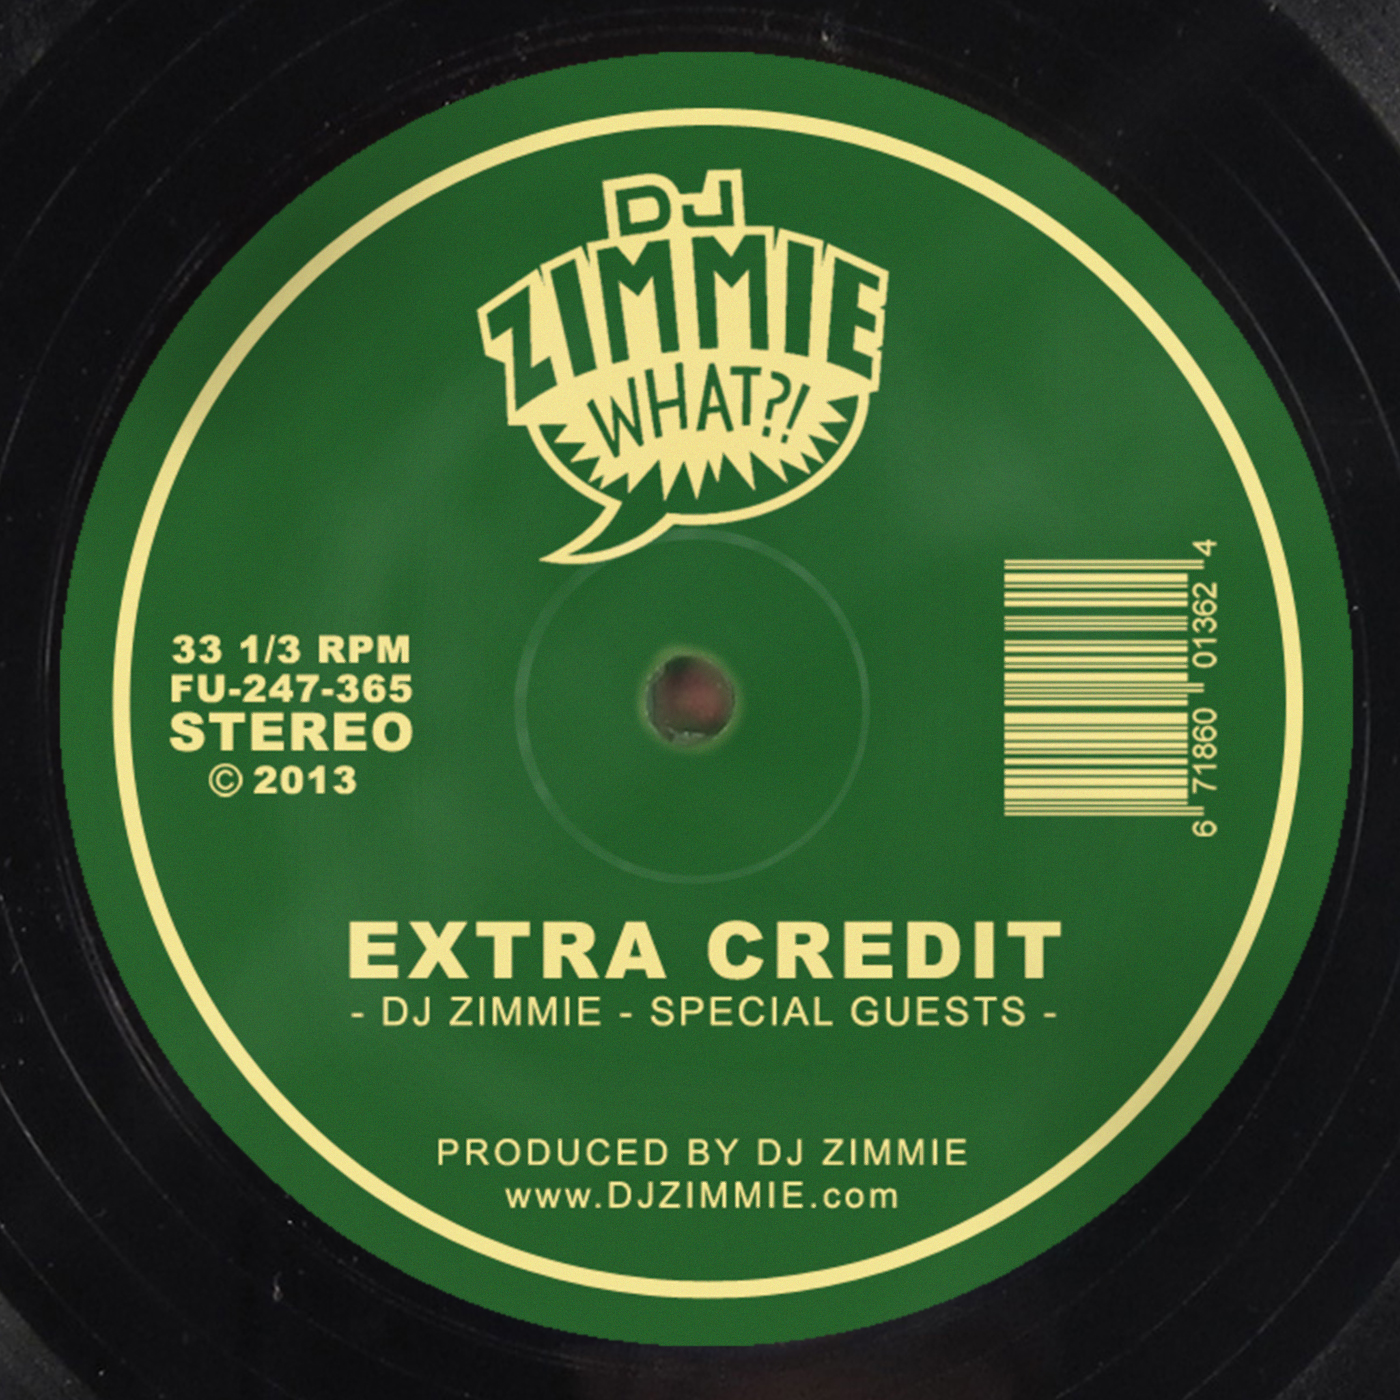 Extra Credit with DJ Zimmie